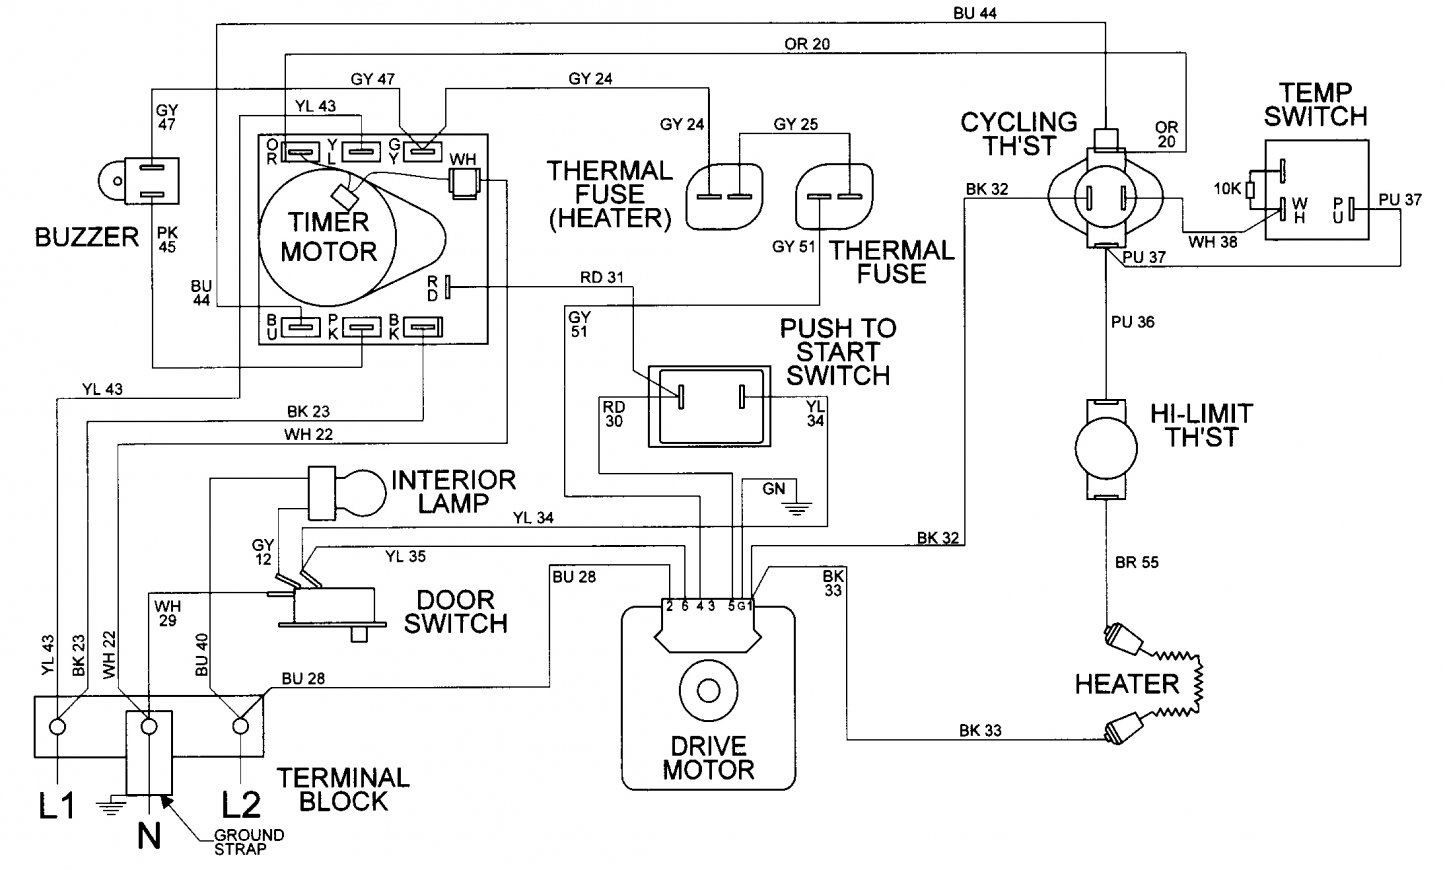 Wiring Diagram Of Washing Machine With Dryer - bookingritzcarlton.info | Washing  machine and dryer, Diagram, MaytagPinterest